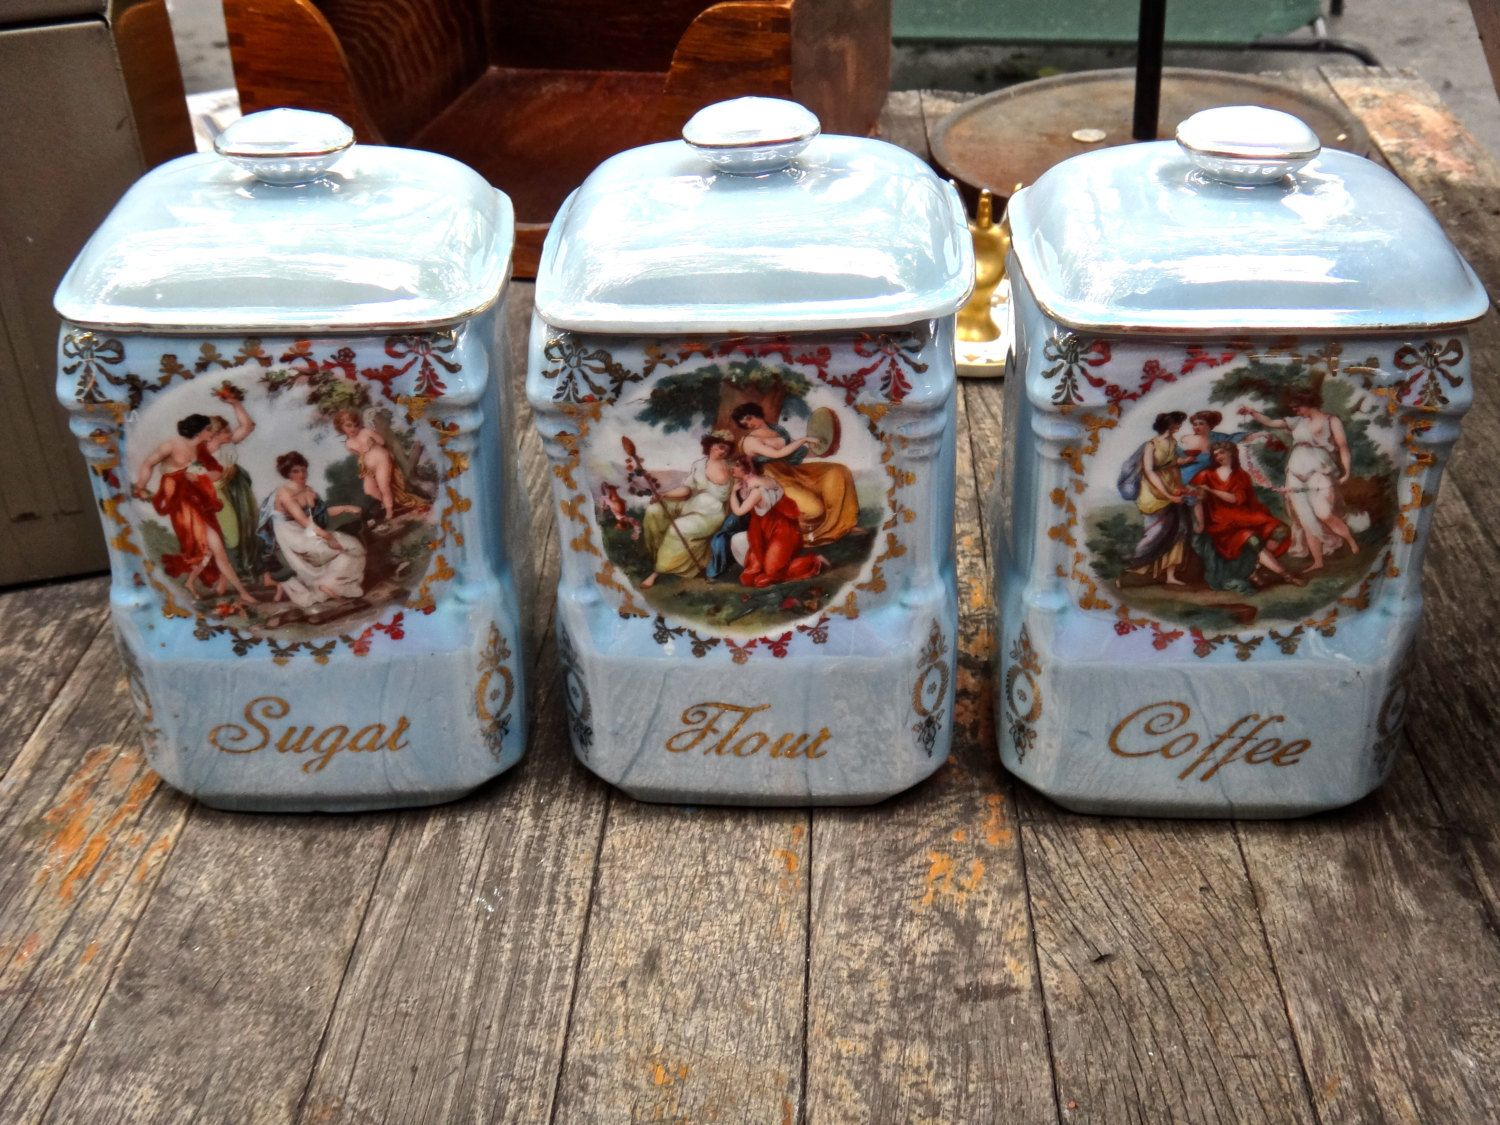 Canisters, Flour Sugar Coffee Containers, Victoria China Czechoslovakia,  Luminscent Kitchen Storage, Victorian